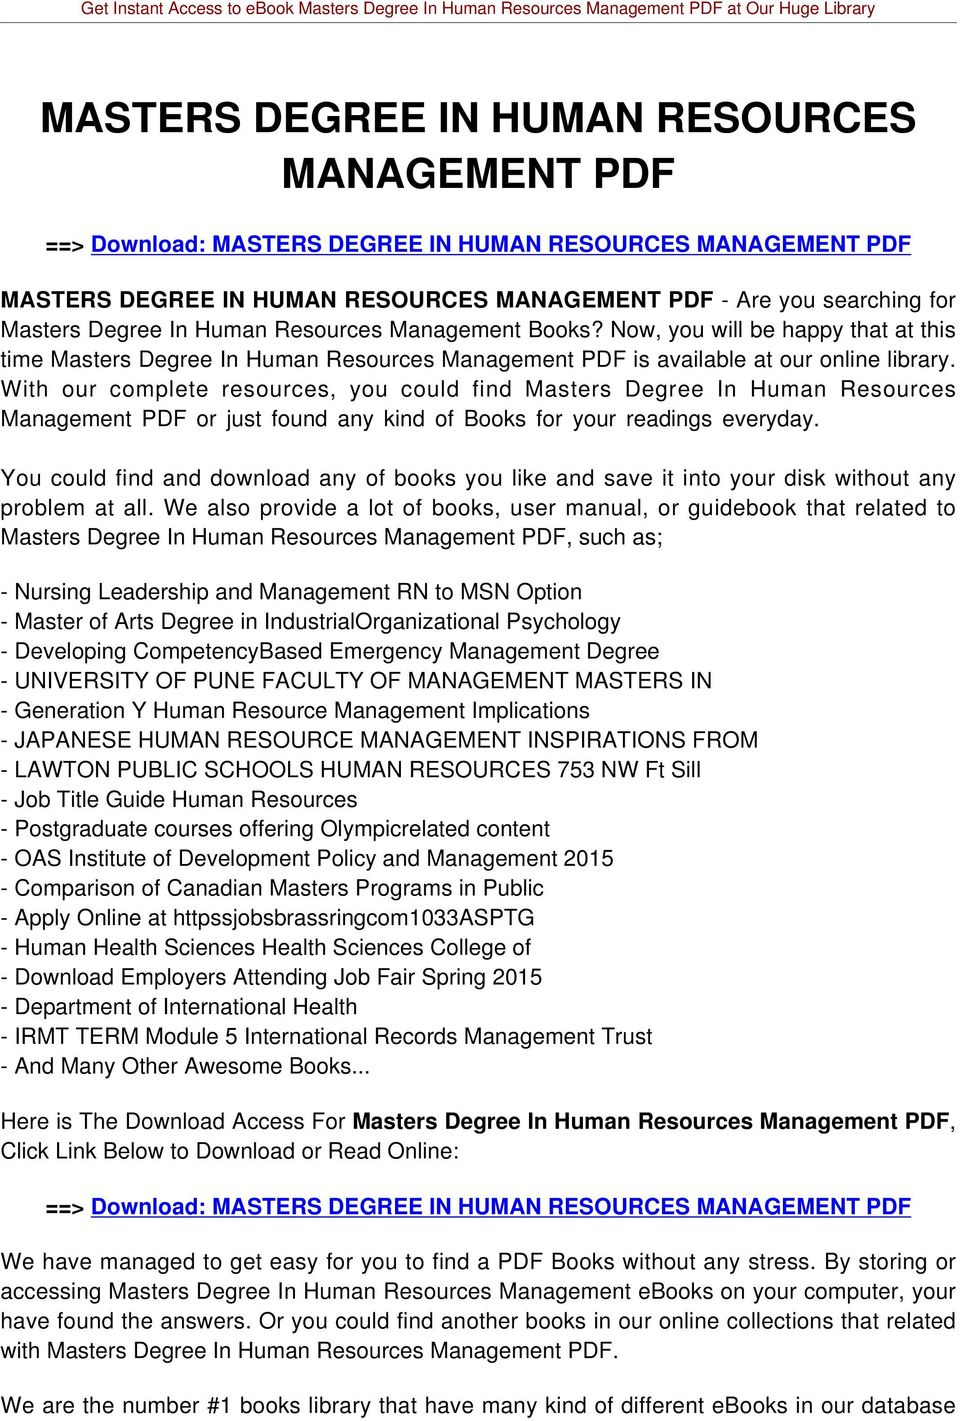 With our complete resources, you could find Masters Degree In Human Resources Management PDF or just found any kind of Books for your readings everyday.